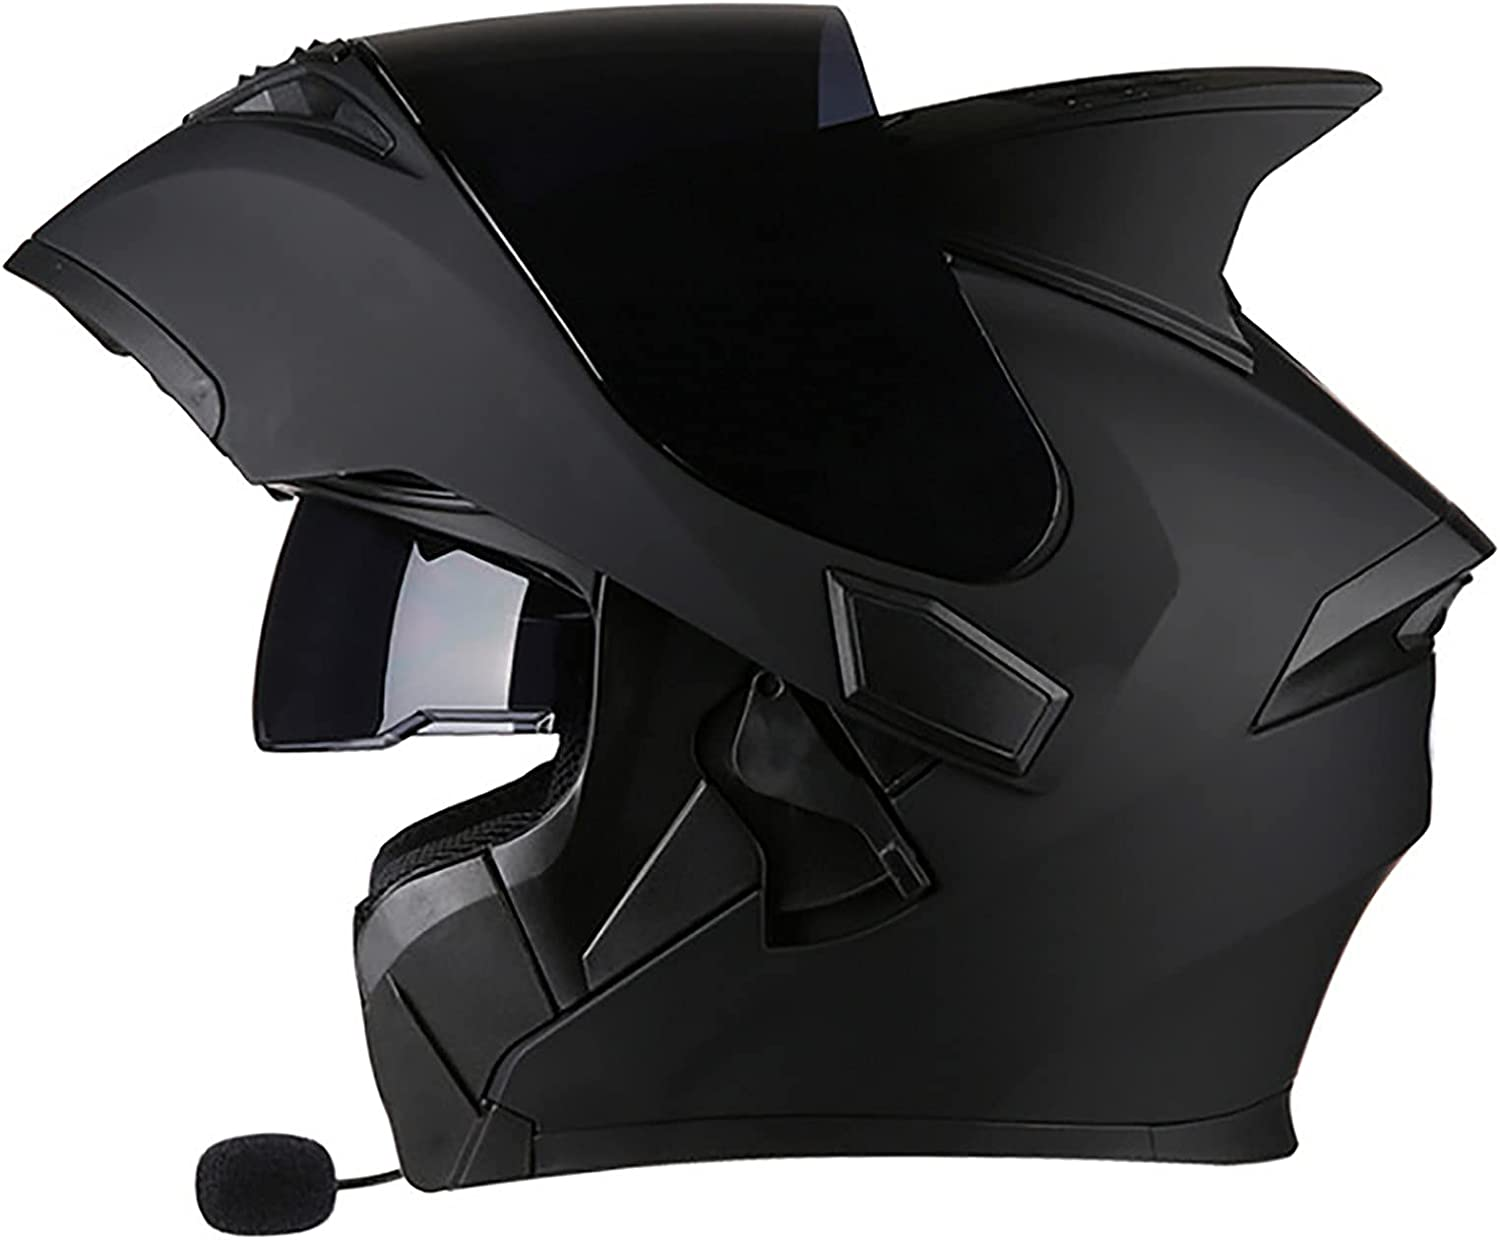 Flip Up Full Face Modular Motorcycle D in Built Limited time sale Helmet Great interest Bluetooth